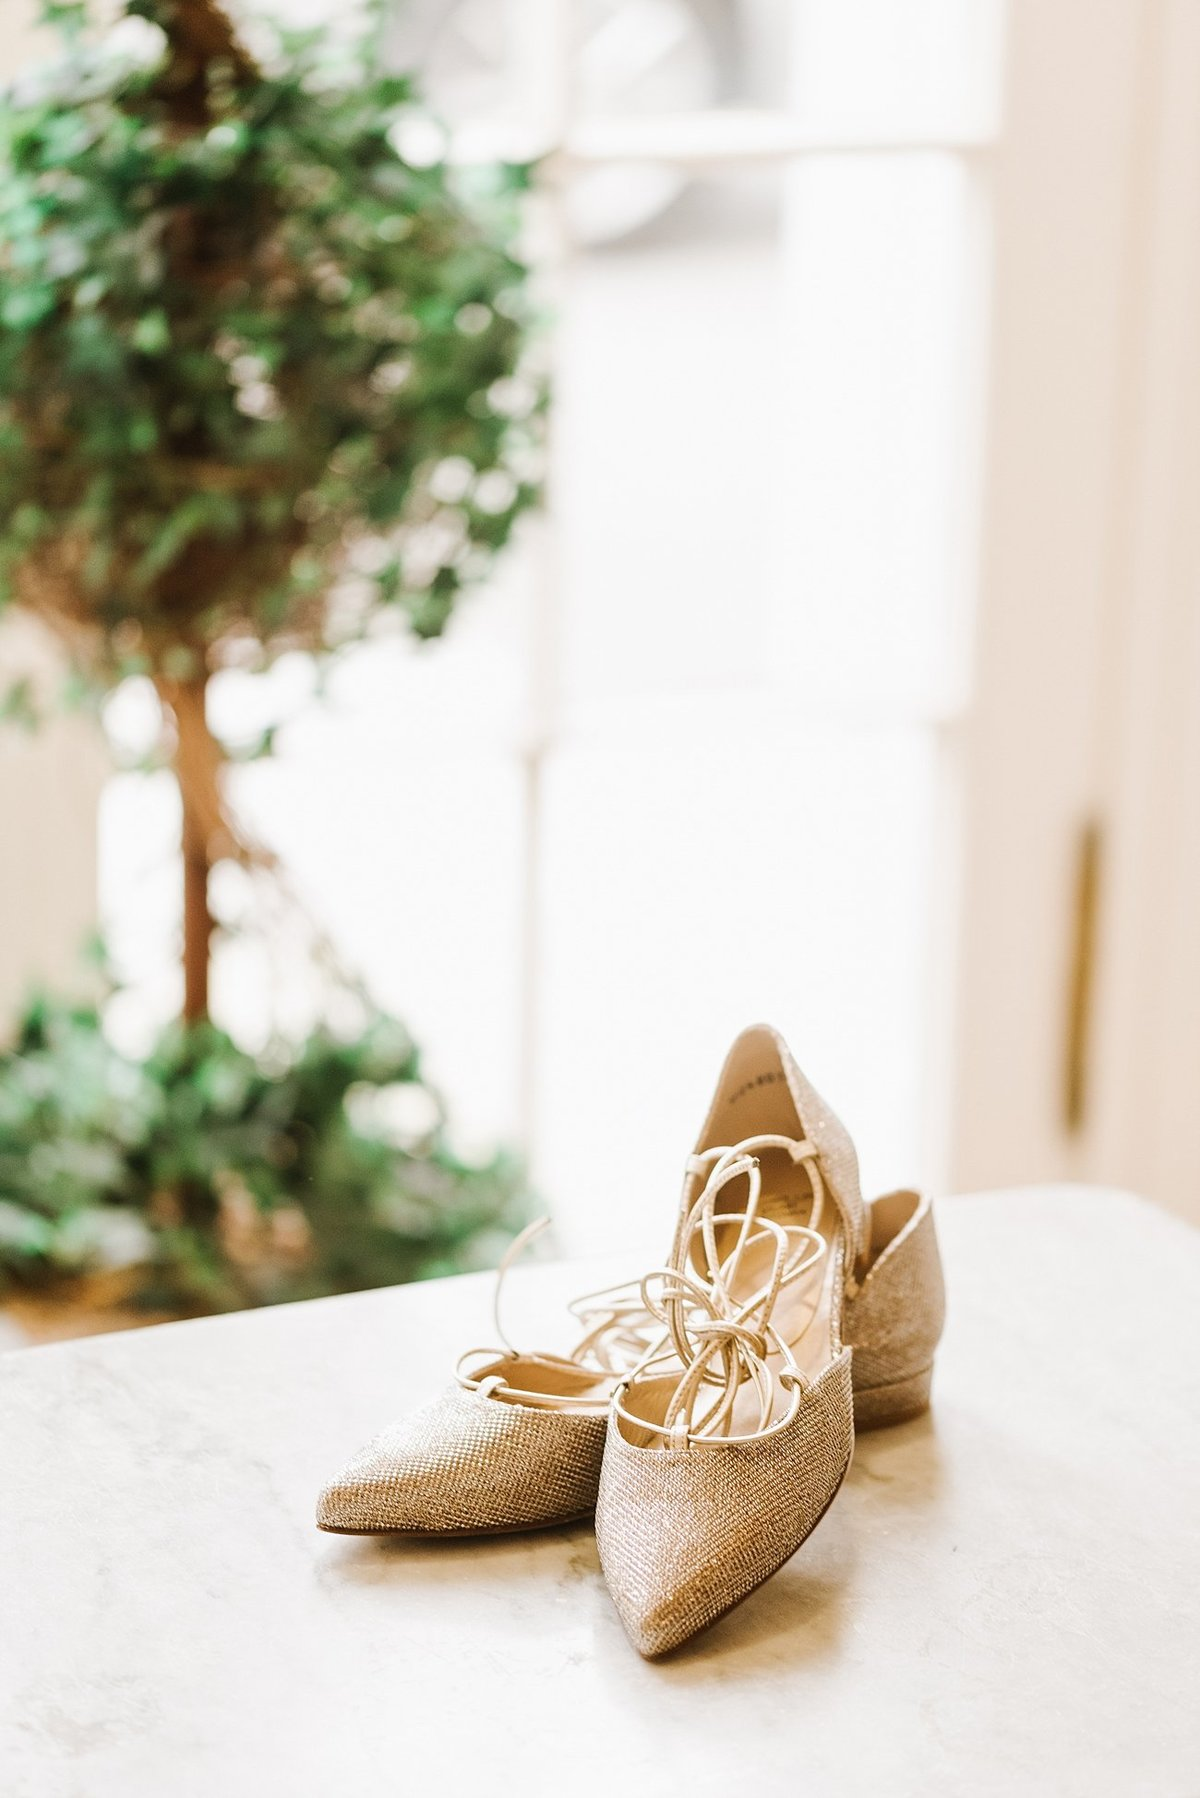 tupper-manor-wedding-photographer-photo_0002